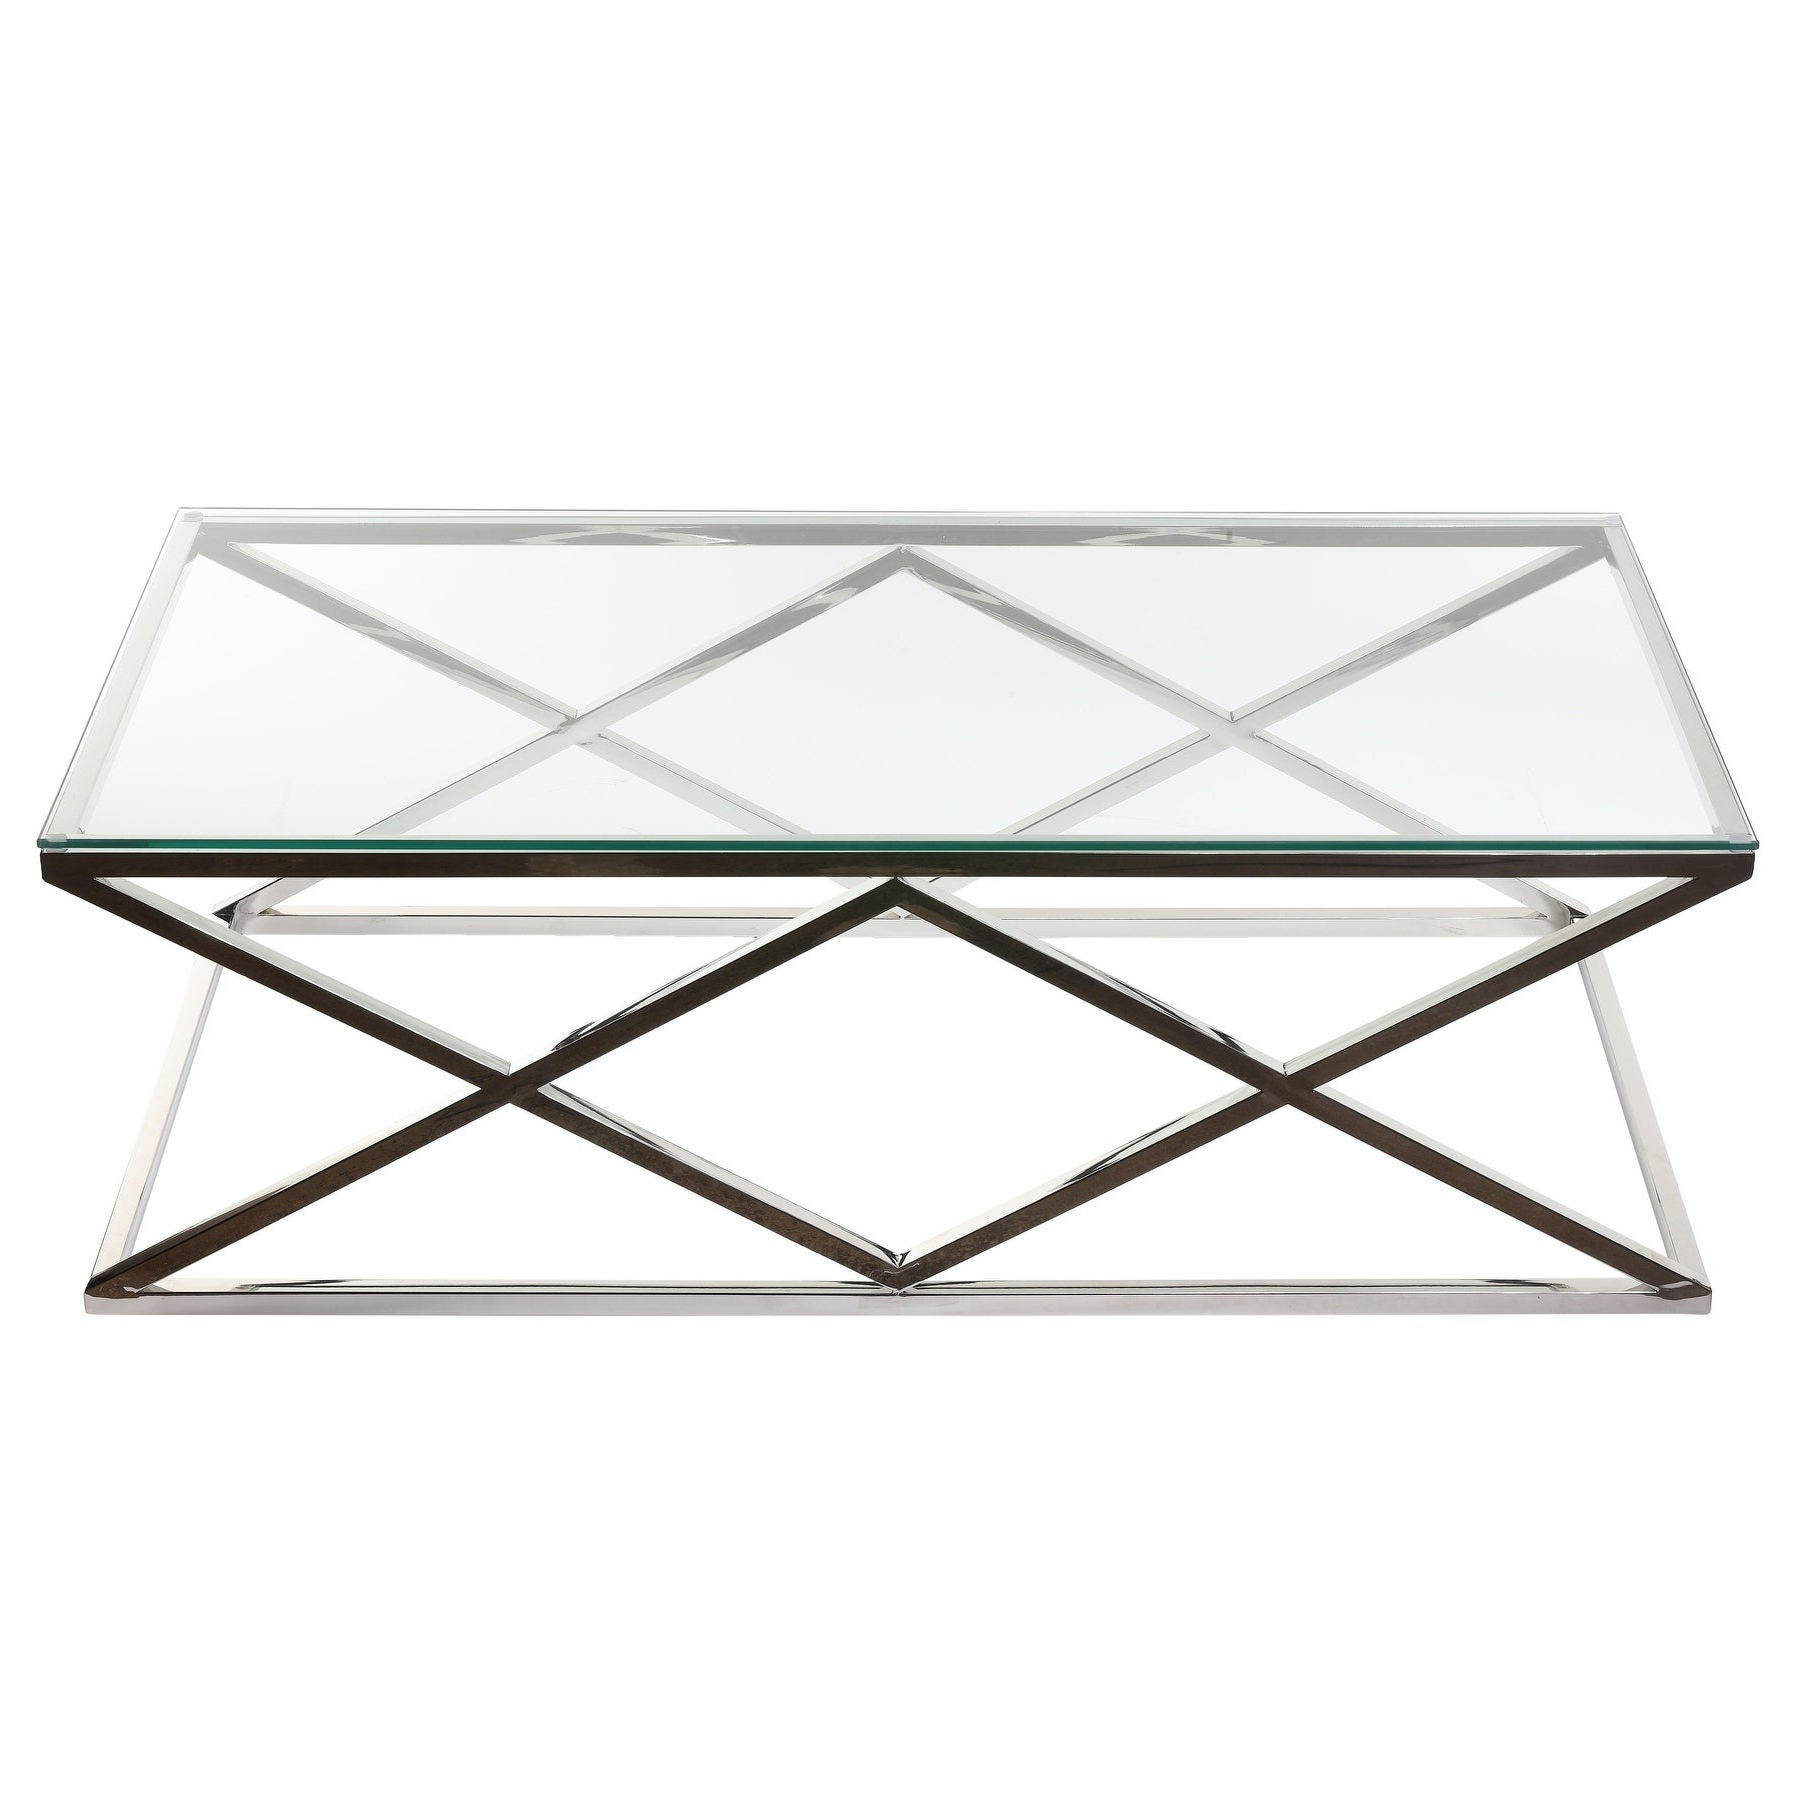 Cortesi Home Gwen Contemporary Glass Coffee Table Regarding Favorite Cortesi Home Remi Contemporary Chrome Glass Coffee Tables (View 5 of 20)